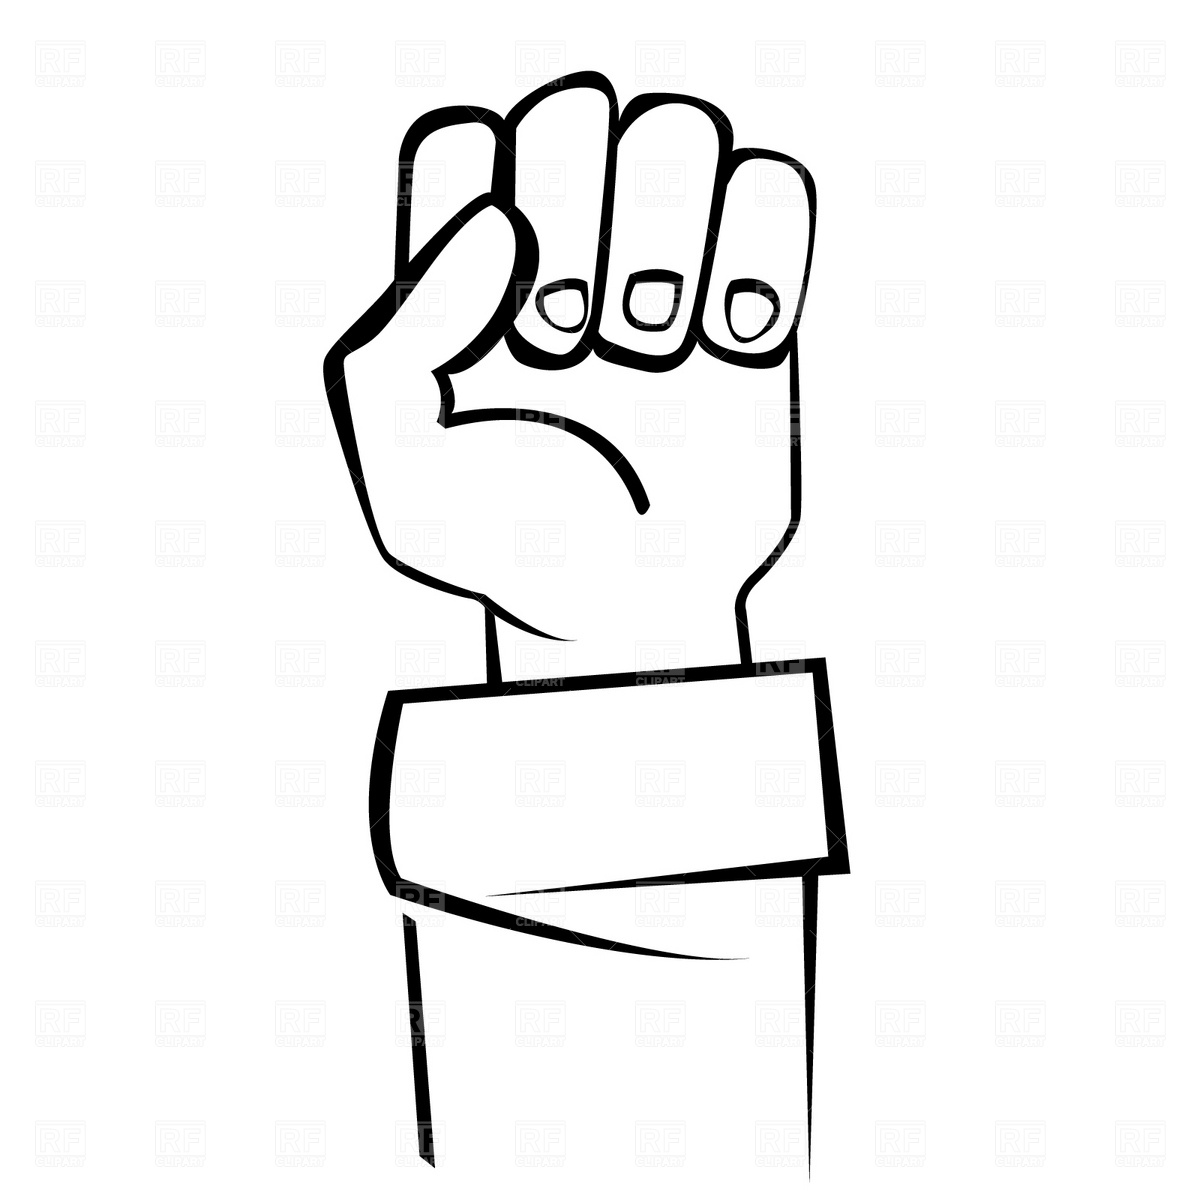 Arm clipart fist, Arm fist Transparent FREE for download on.